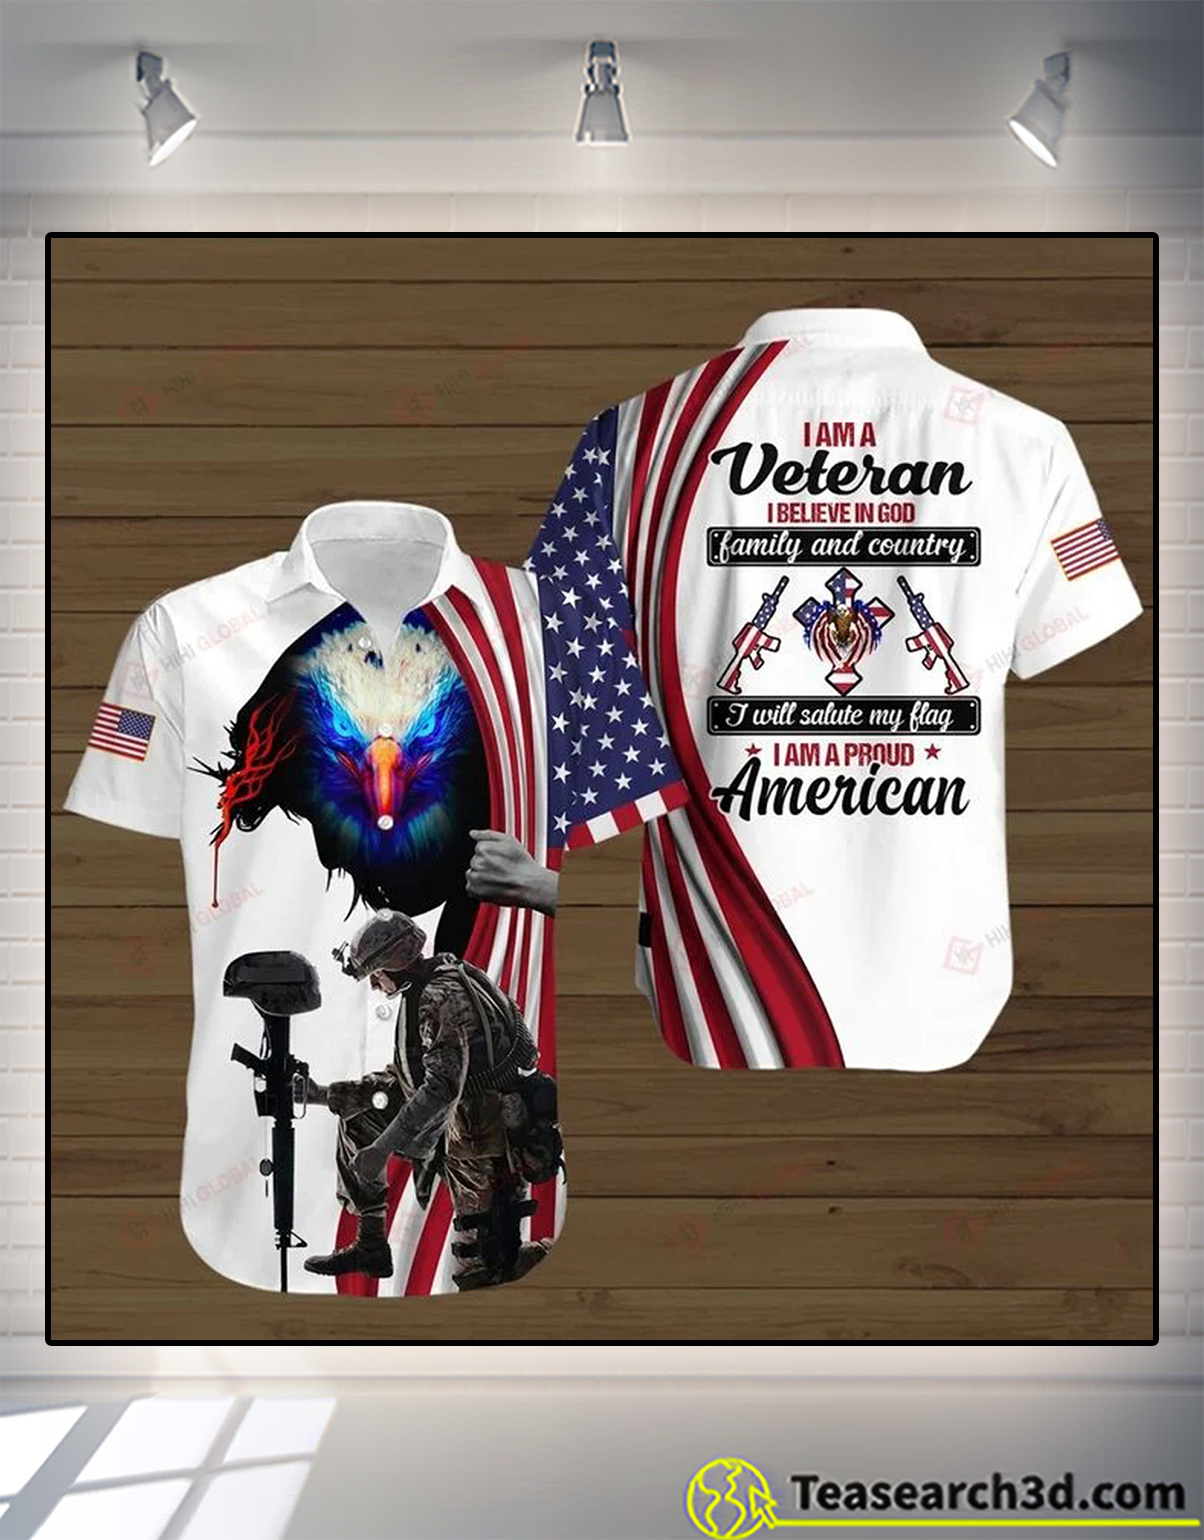 I am a veteran I believe in god family and country 3d all over printed polo